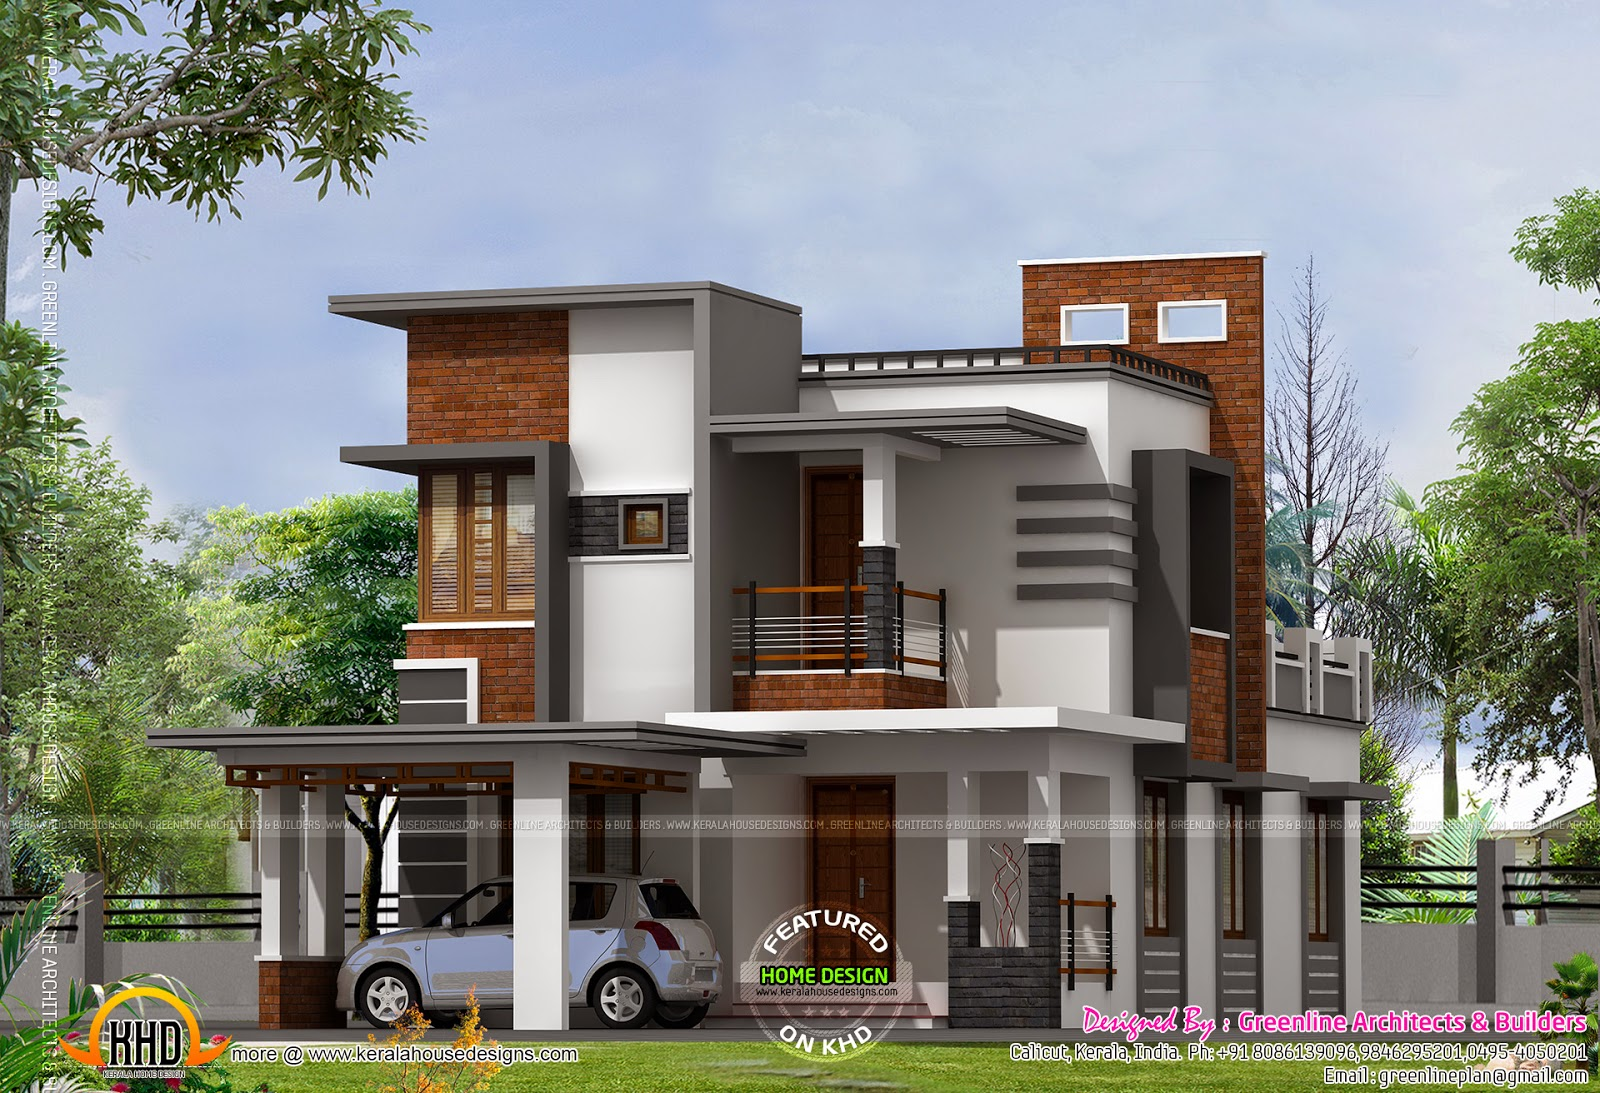 Low cost contemporary house kerala home design and floor Low cost modern homes